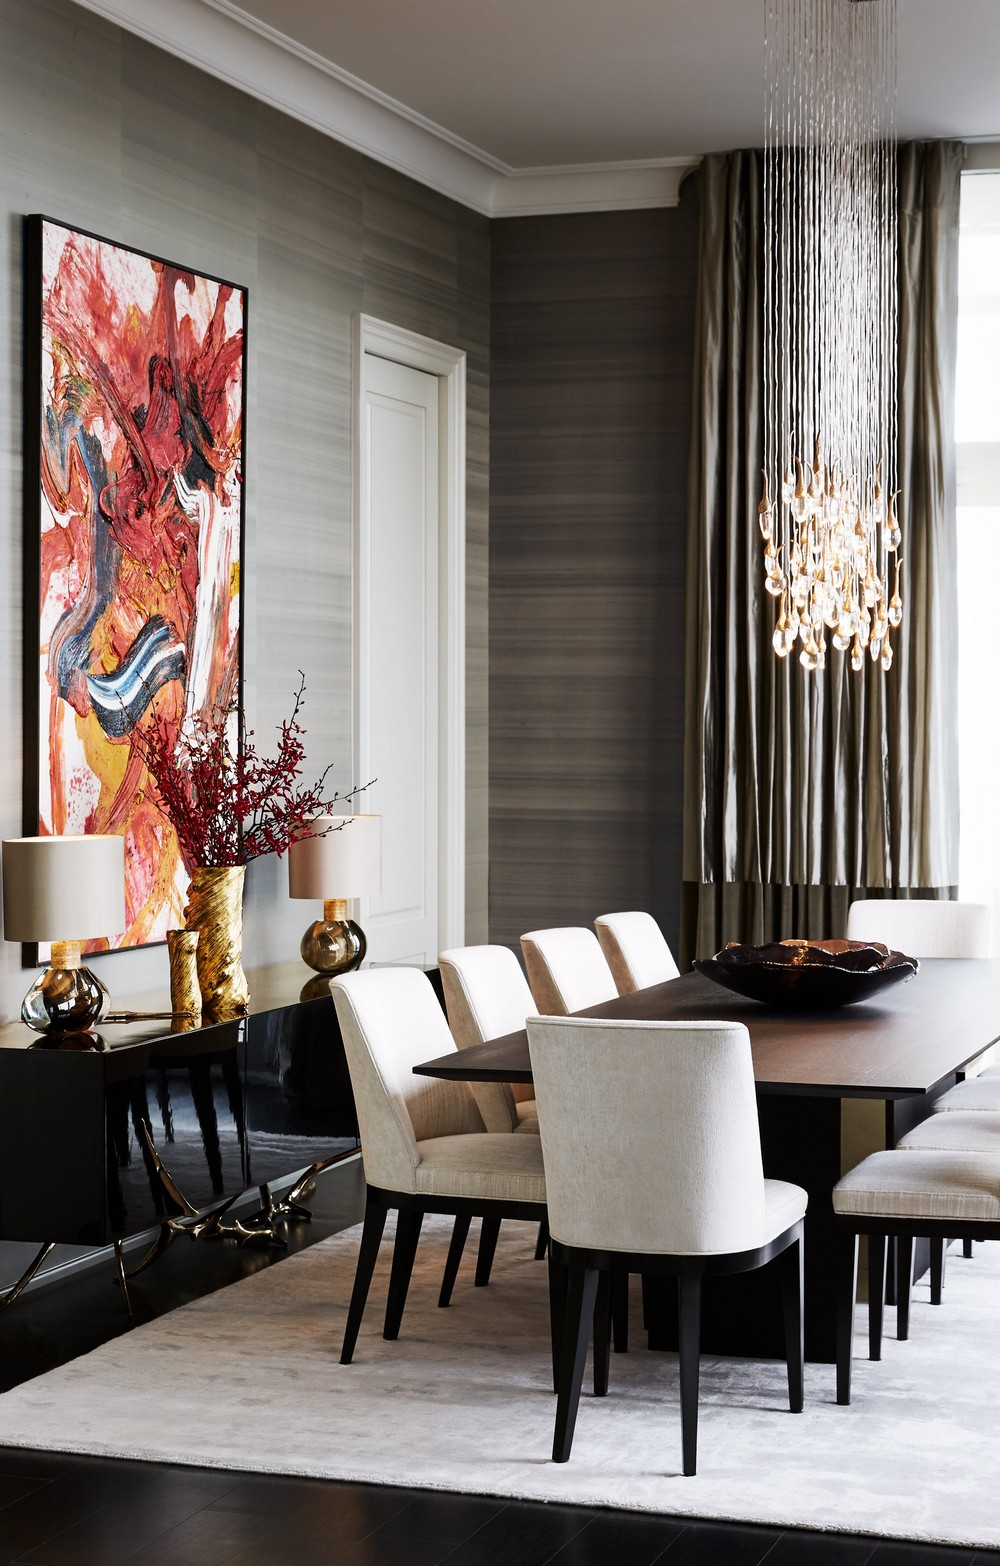 An Unparalleled Devotion to Detail: Dining Rooms by Julie Charbonneau julie charbonneau An Unparalleled Devotion to Detail: Dining Rooms by Julie Charbonneau 5 1stdibs